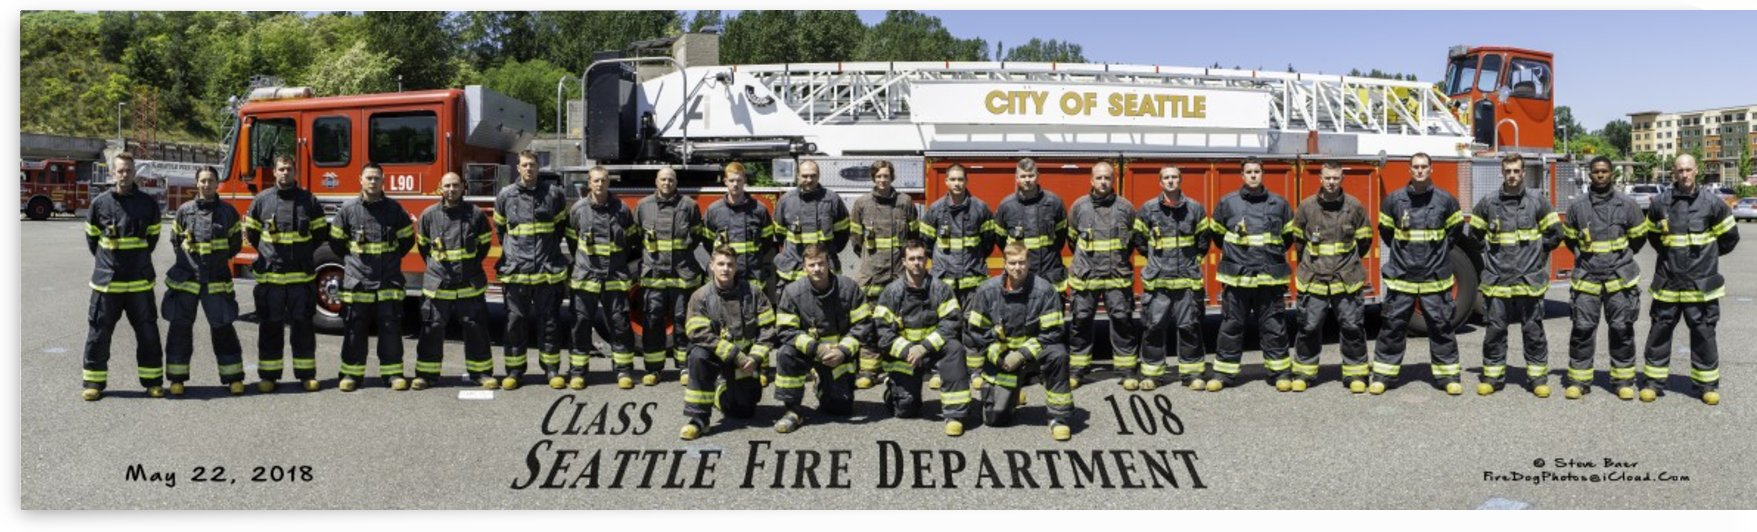 Seattle Fire Recruit Class 108 closed coats by Steve